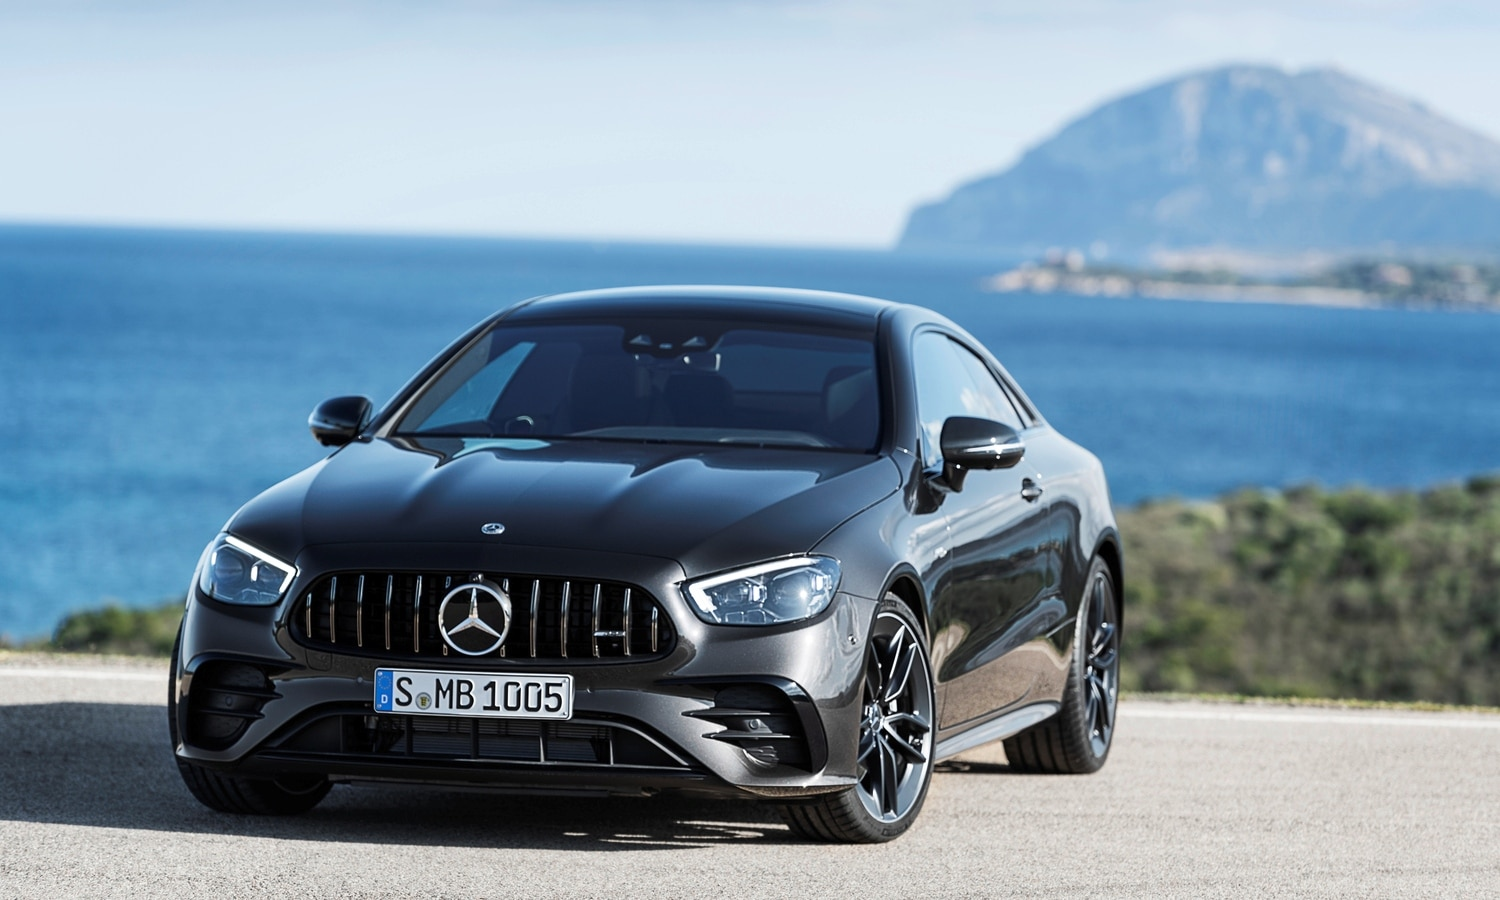 Mercedes-Benz Clase E AMG 53 Coupé 2020